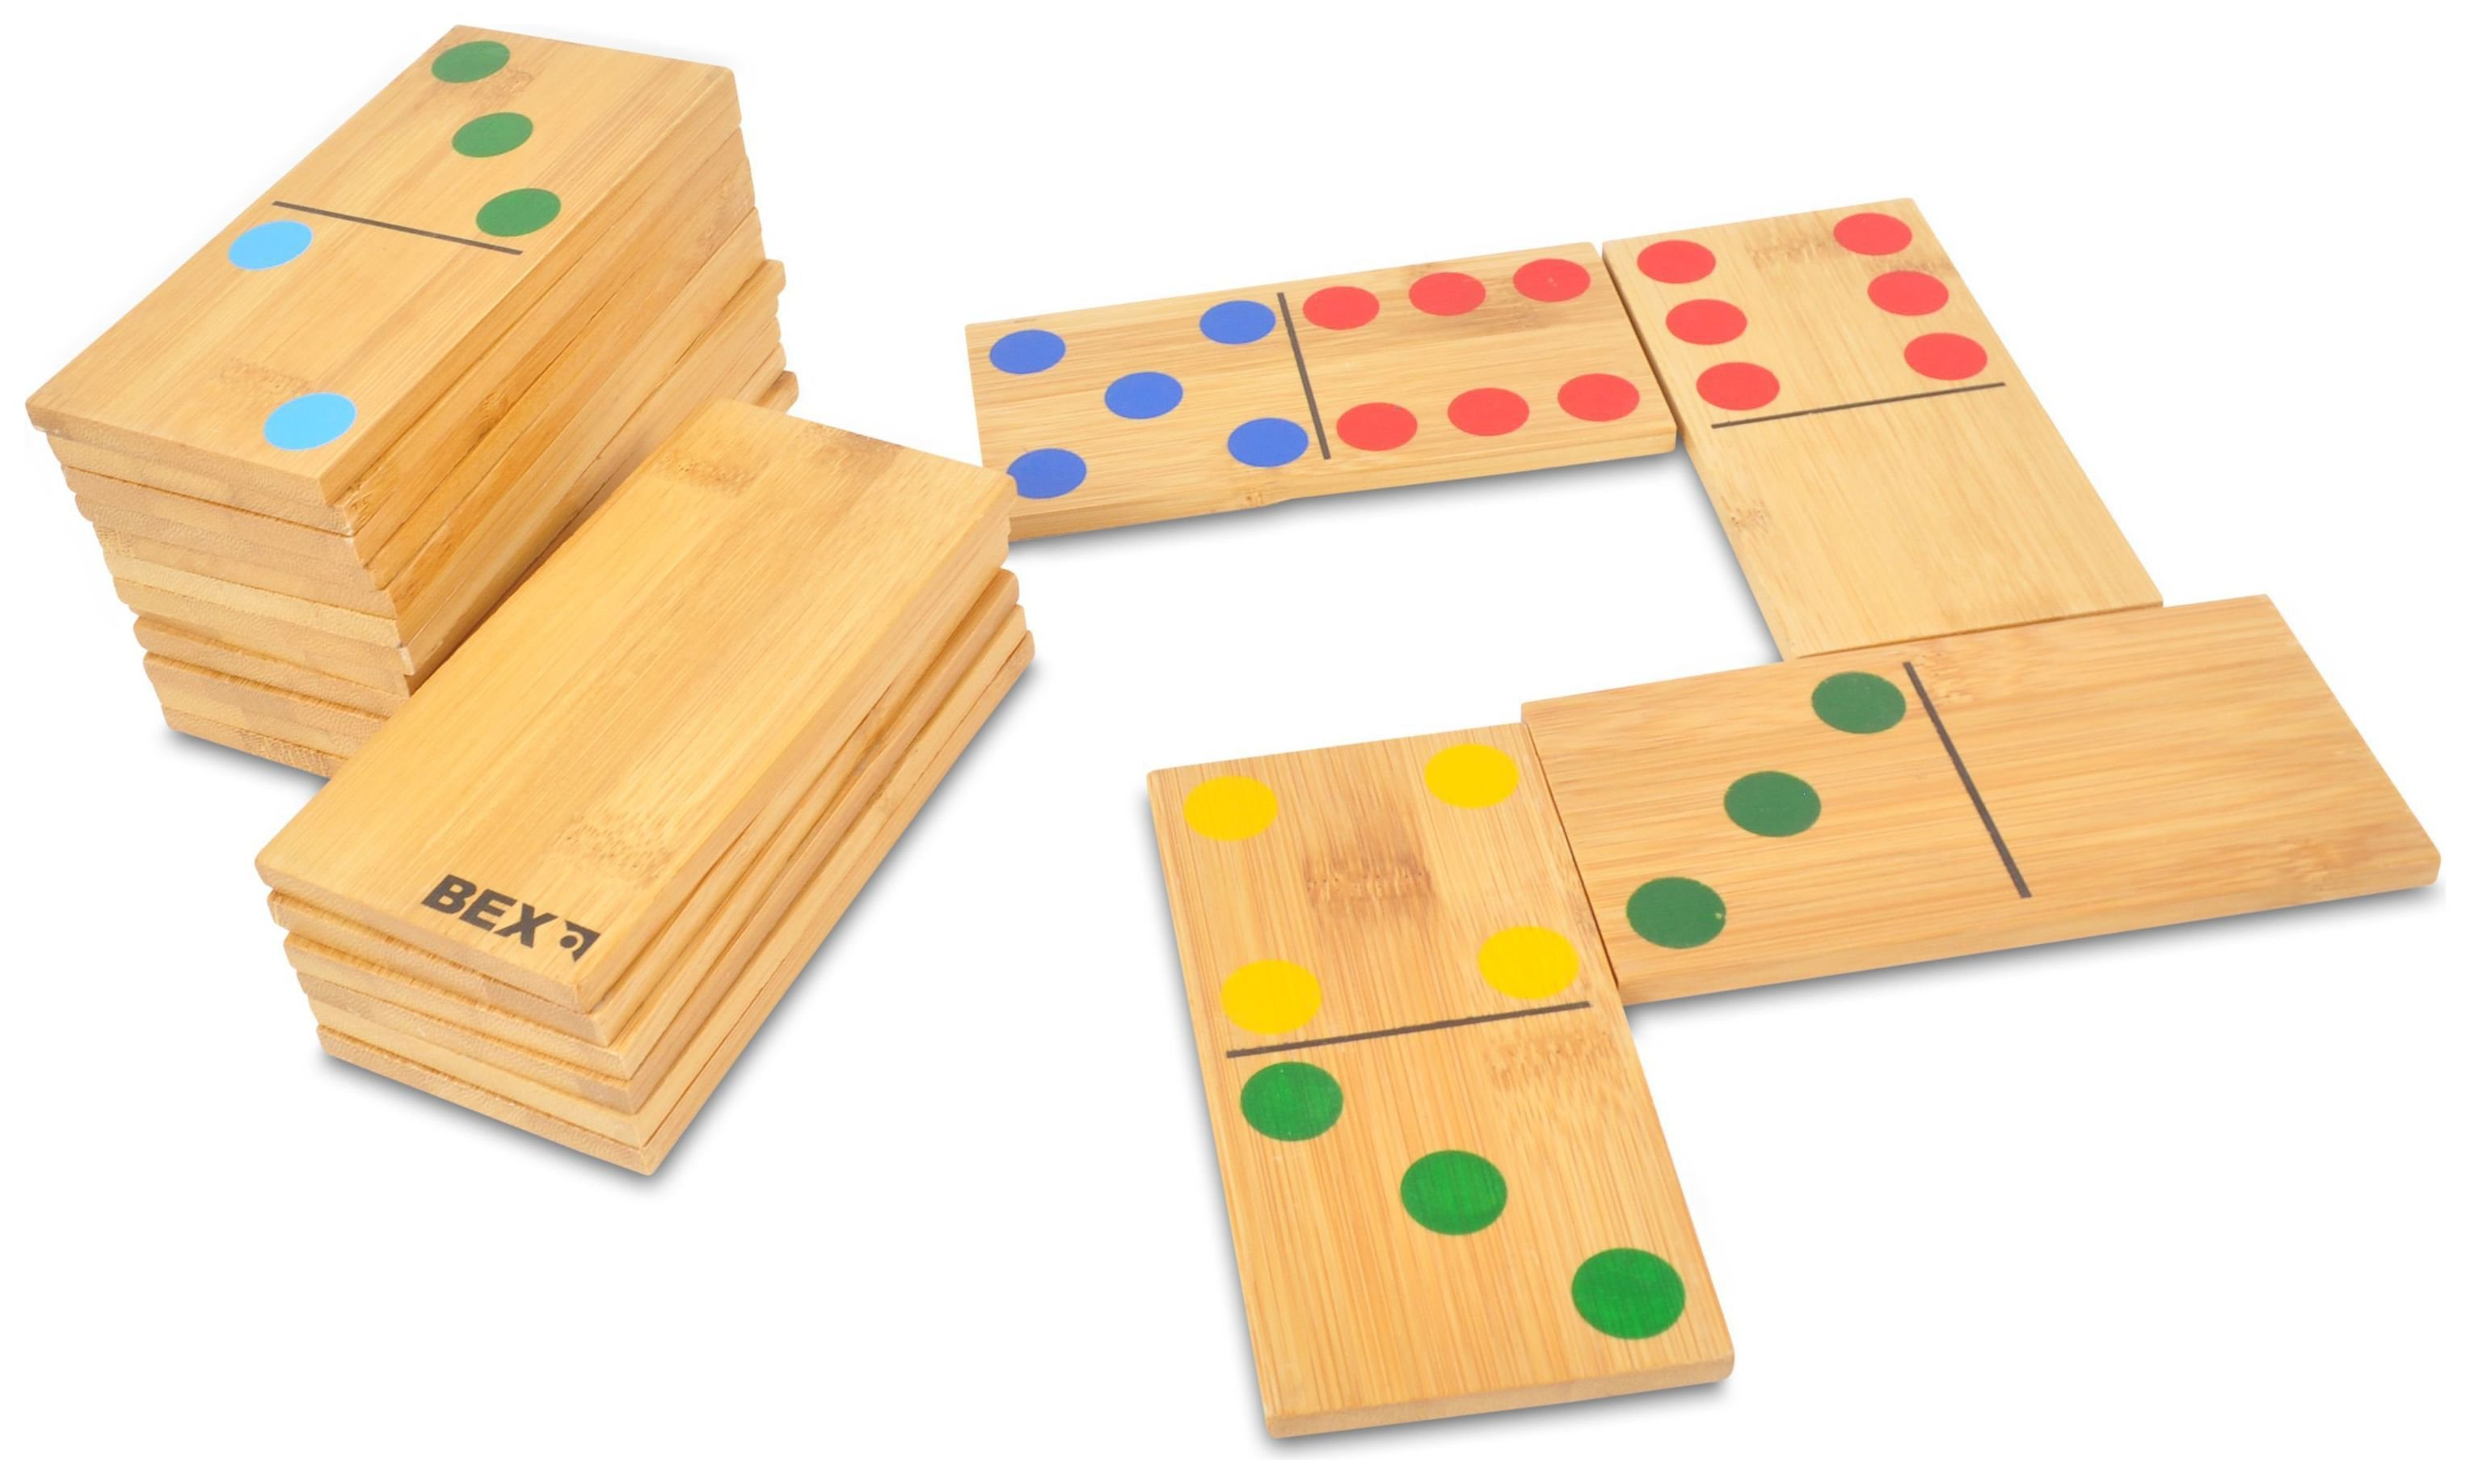 Image of Bex Giant Domino Garden Game.